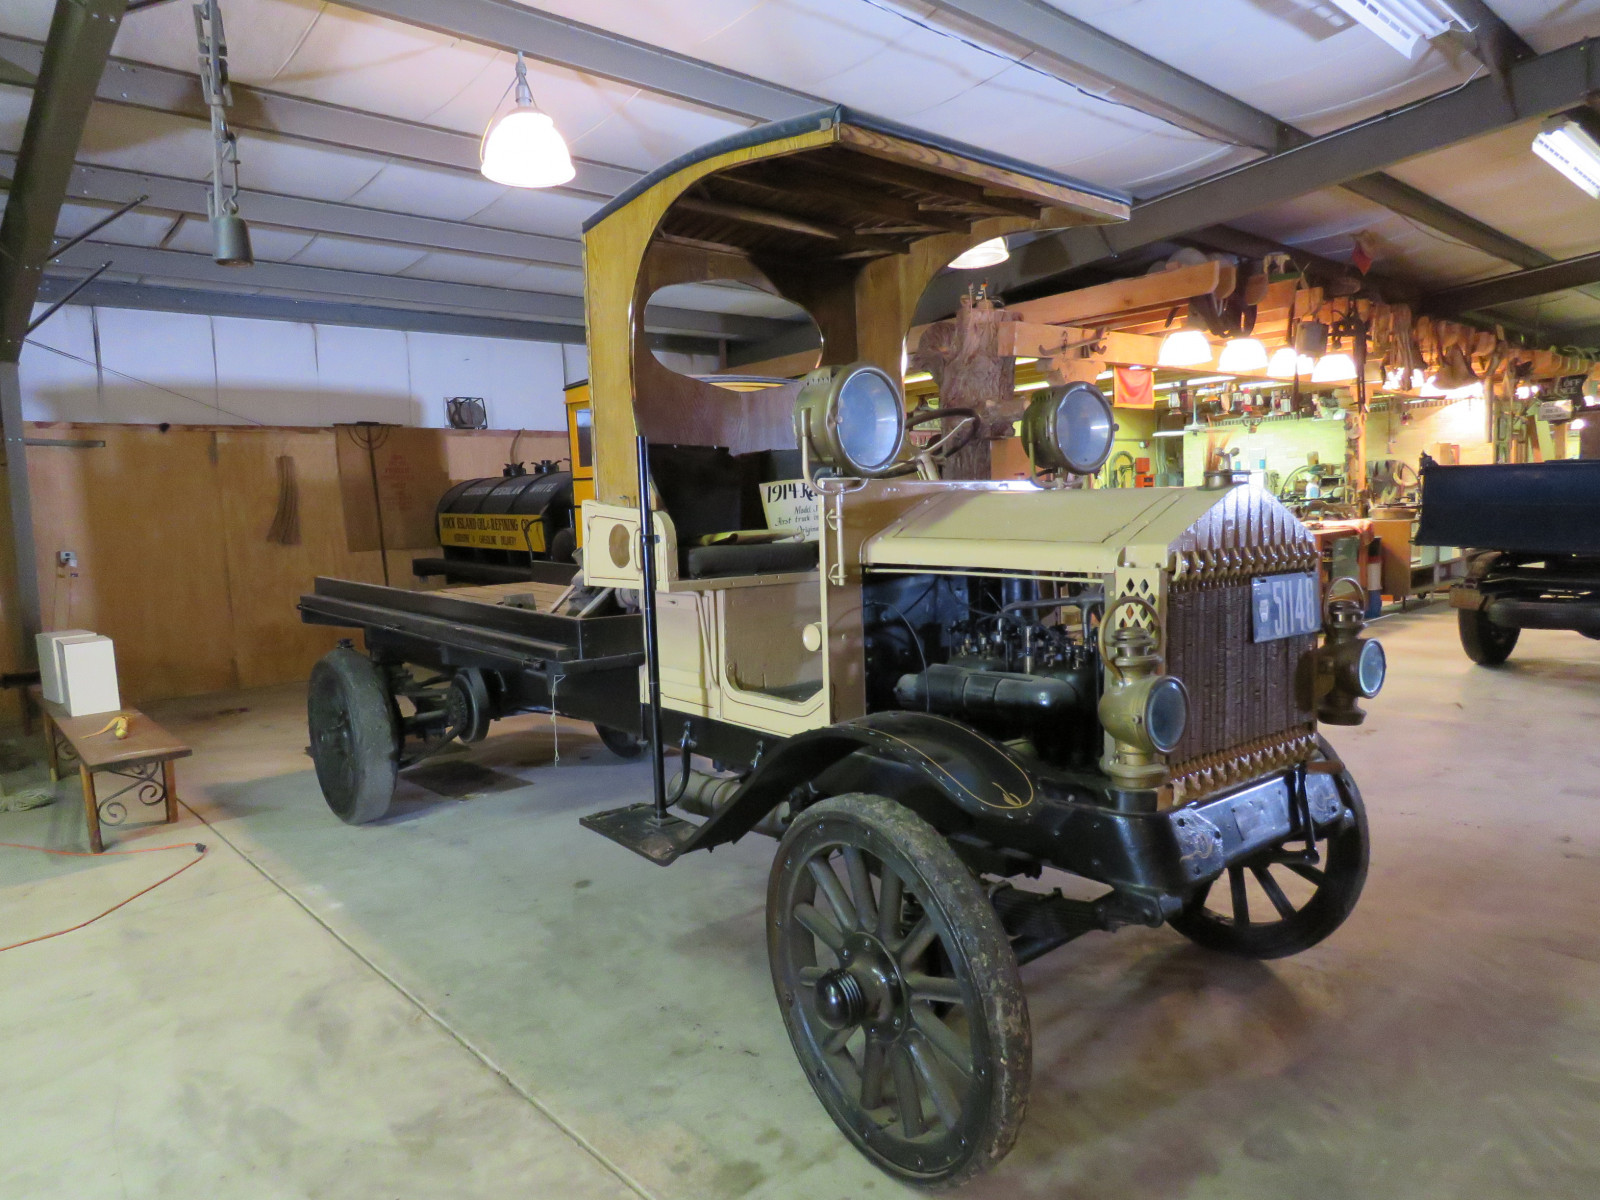 1914 REO Speedwagon Model J 2 Ton Truck - Image 1